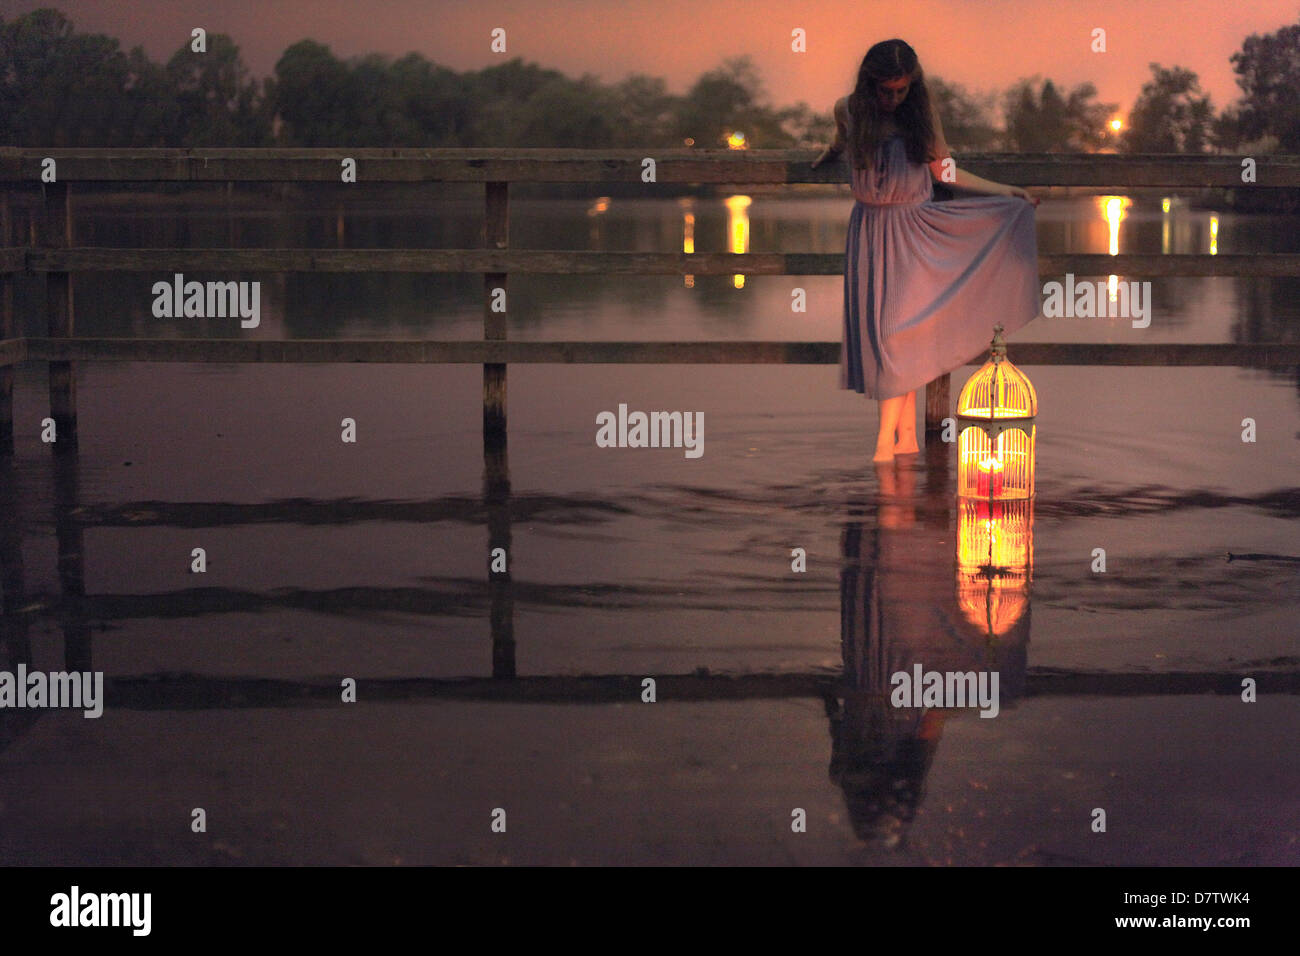 Girl standing in ripples of water with a birdcage that has a